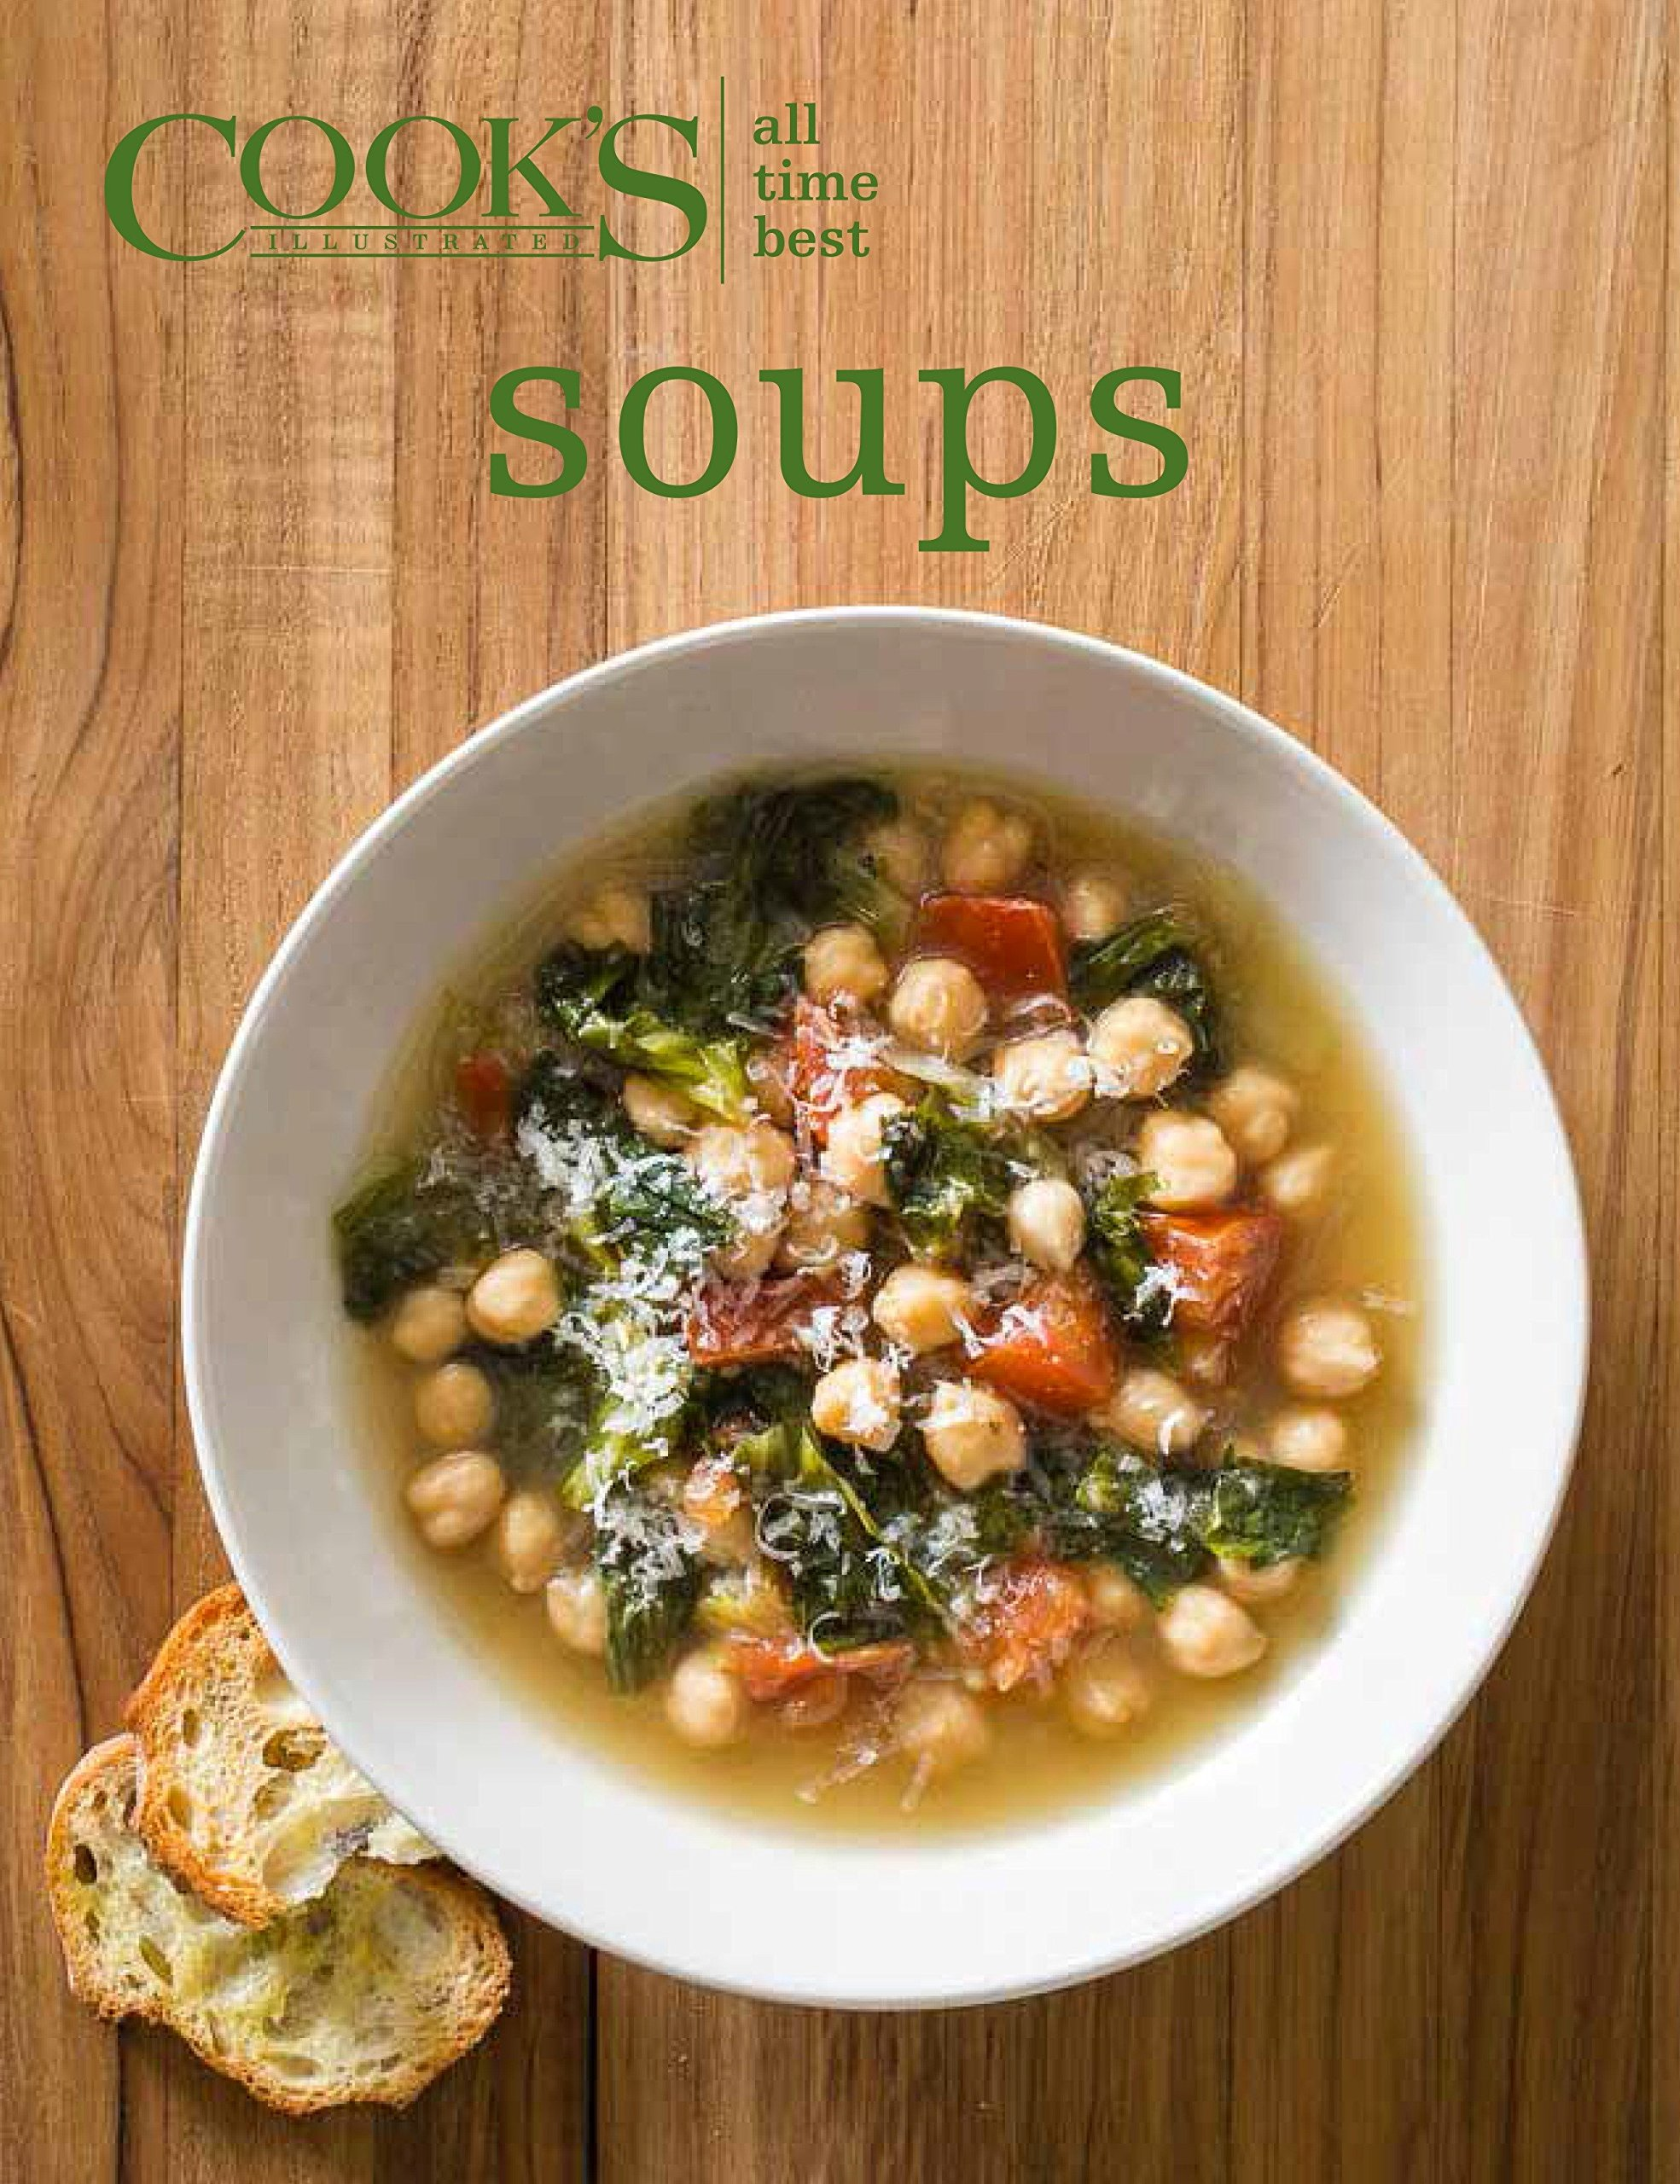 All Time Best Soups by Cook s Illustrated (Image #1)